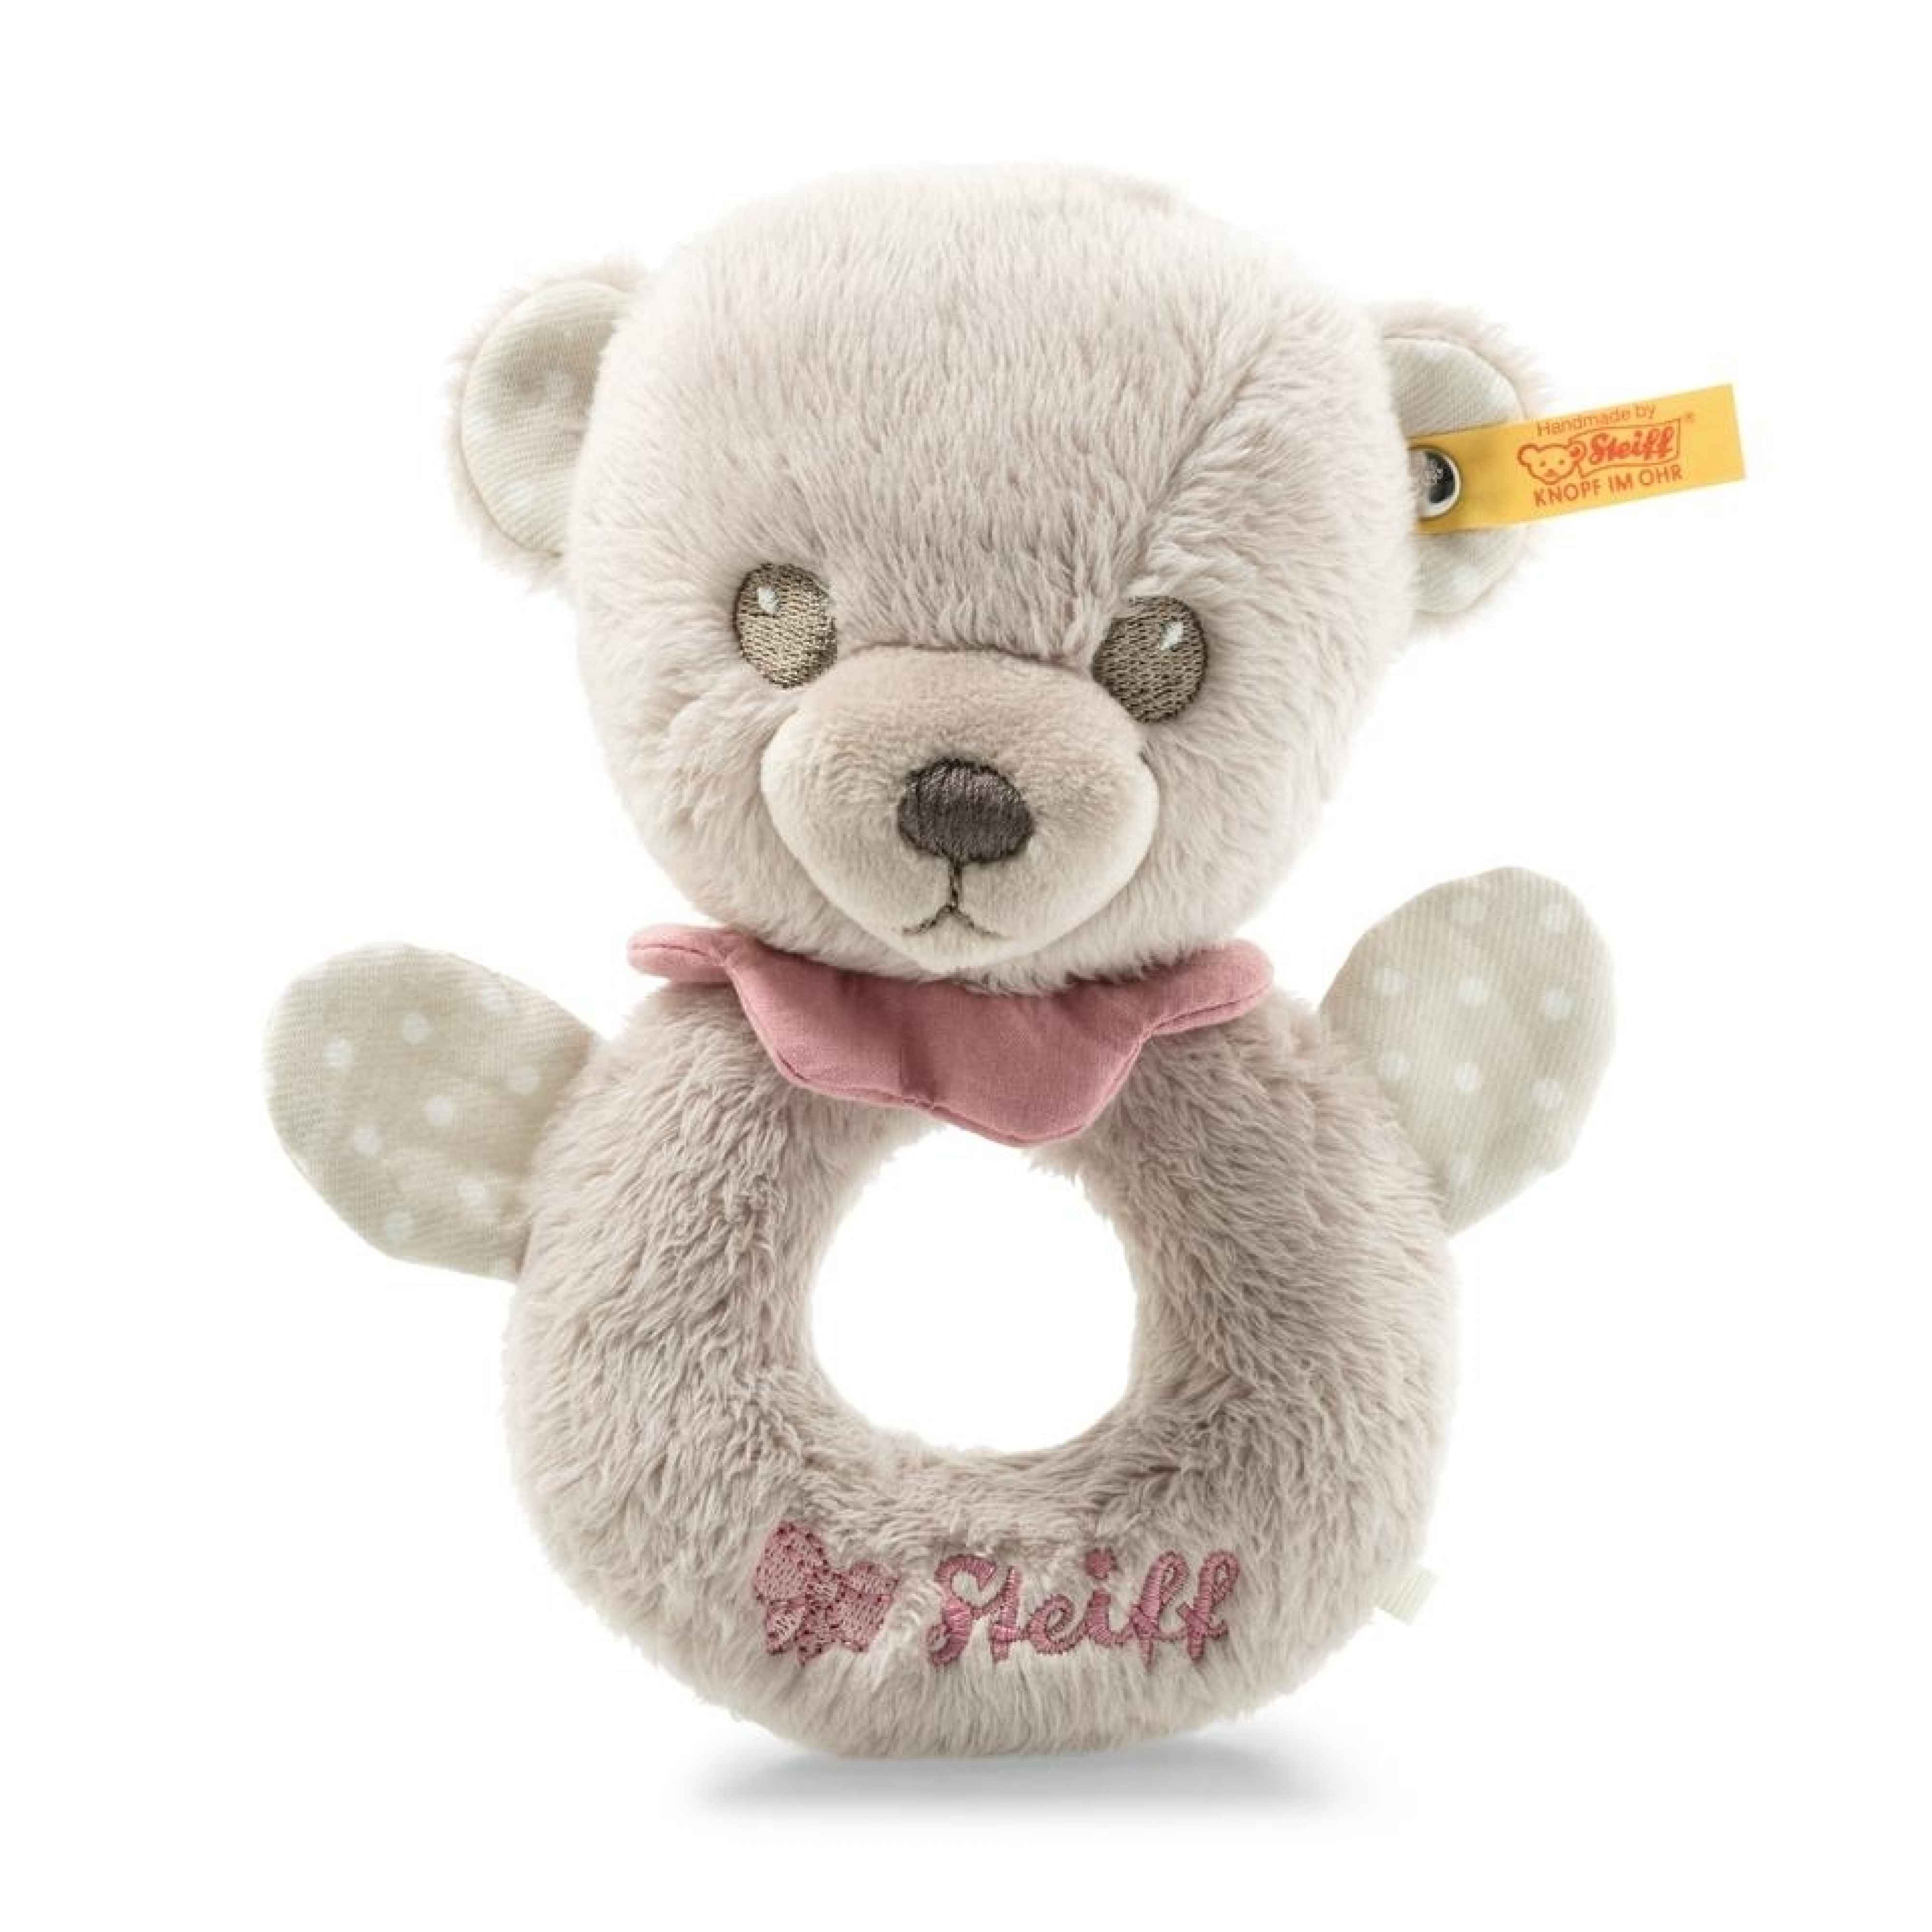 HELLO BABY LEA TEDDY BEAR GRIP TOY WITH RATTLE IN GIFT BOX